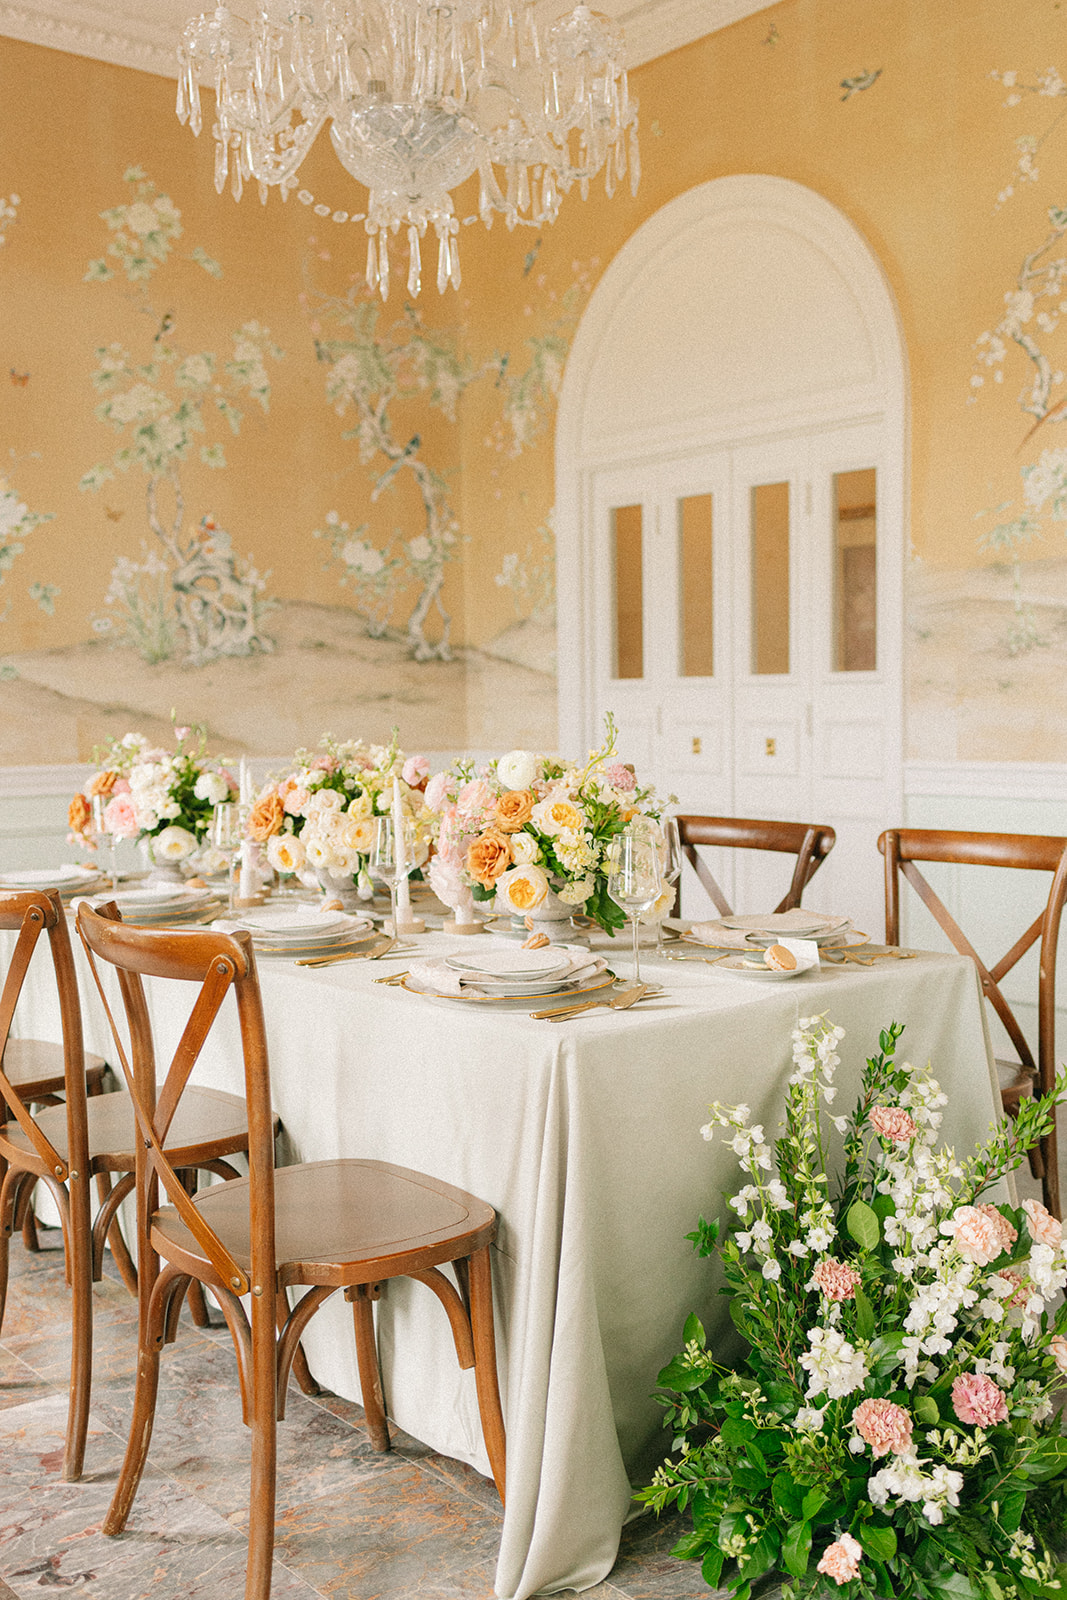 Reception room at The Mansion at ColoVista for the artfully curated styled shoot. Flowers are covering the table and there is a crystal chandelier hanging above the dining table.